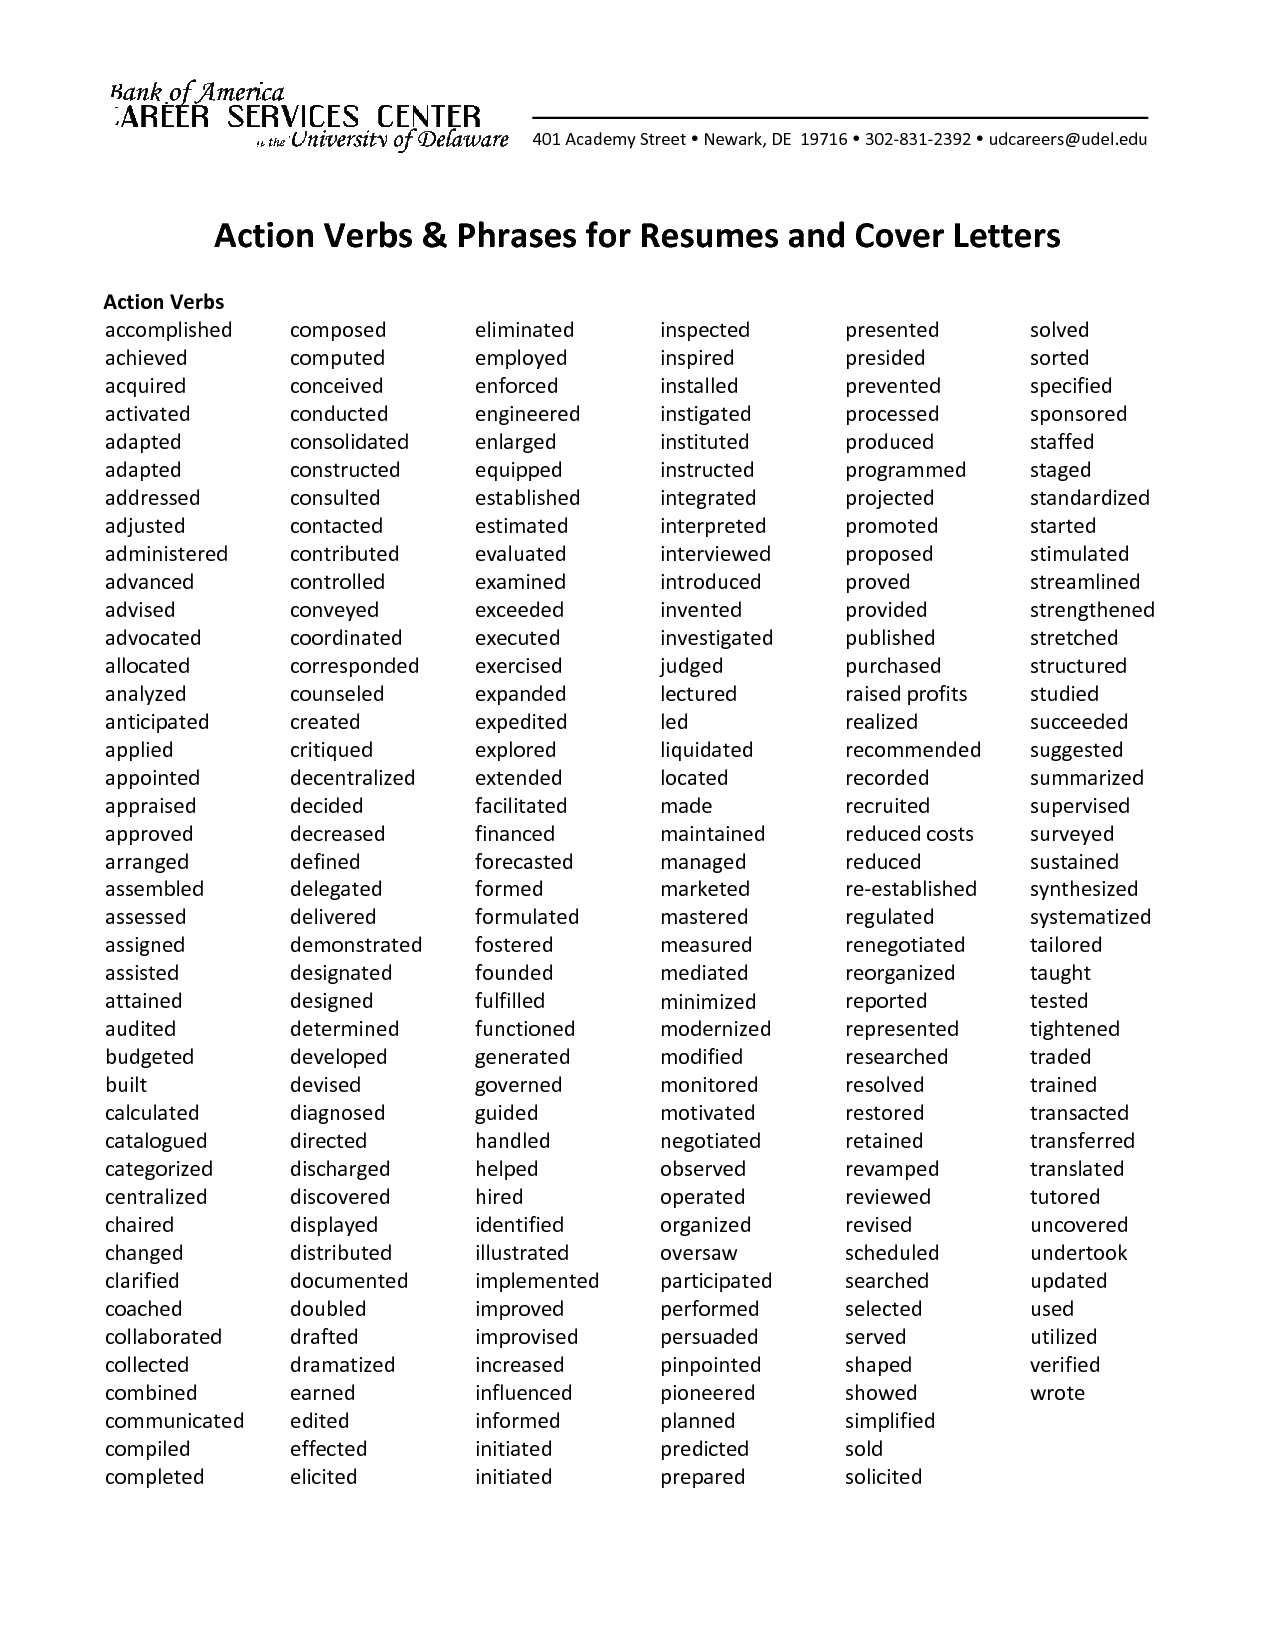 resume Verbs For Resume Skills top resume verbs list of computer teacher to use in cheat sheet action your